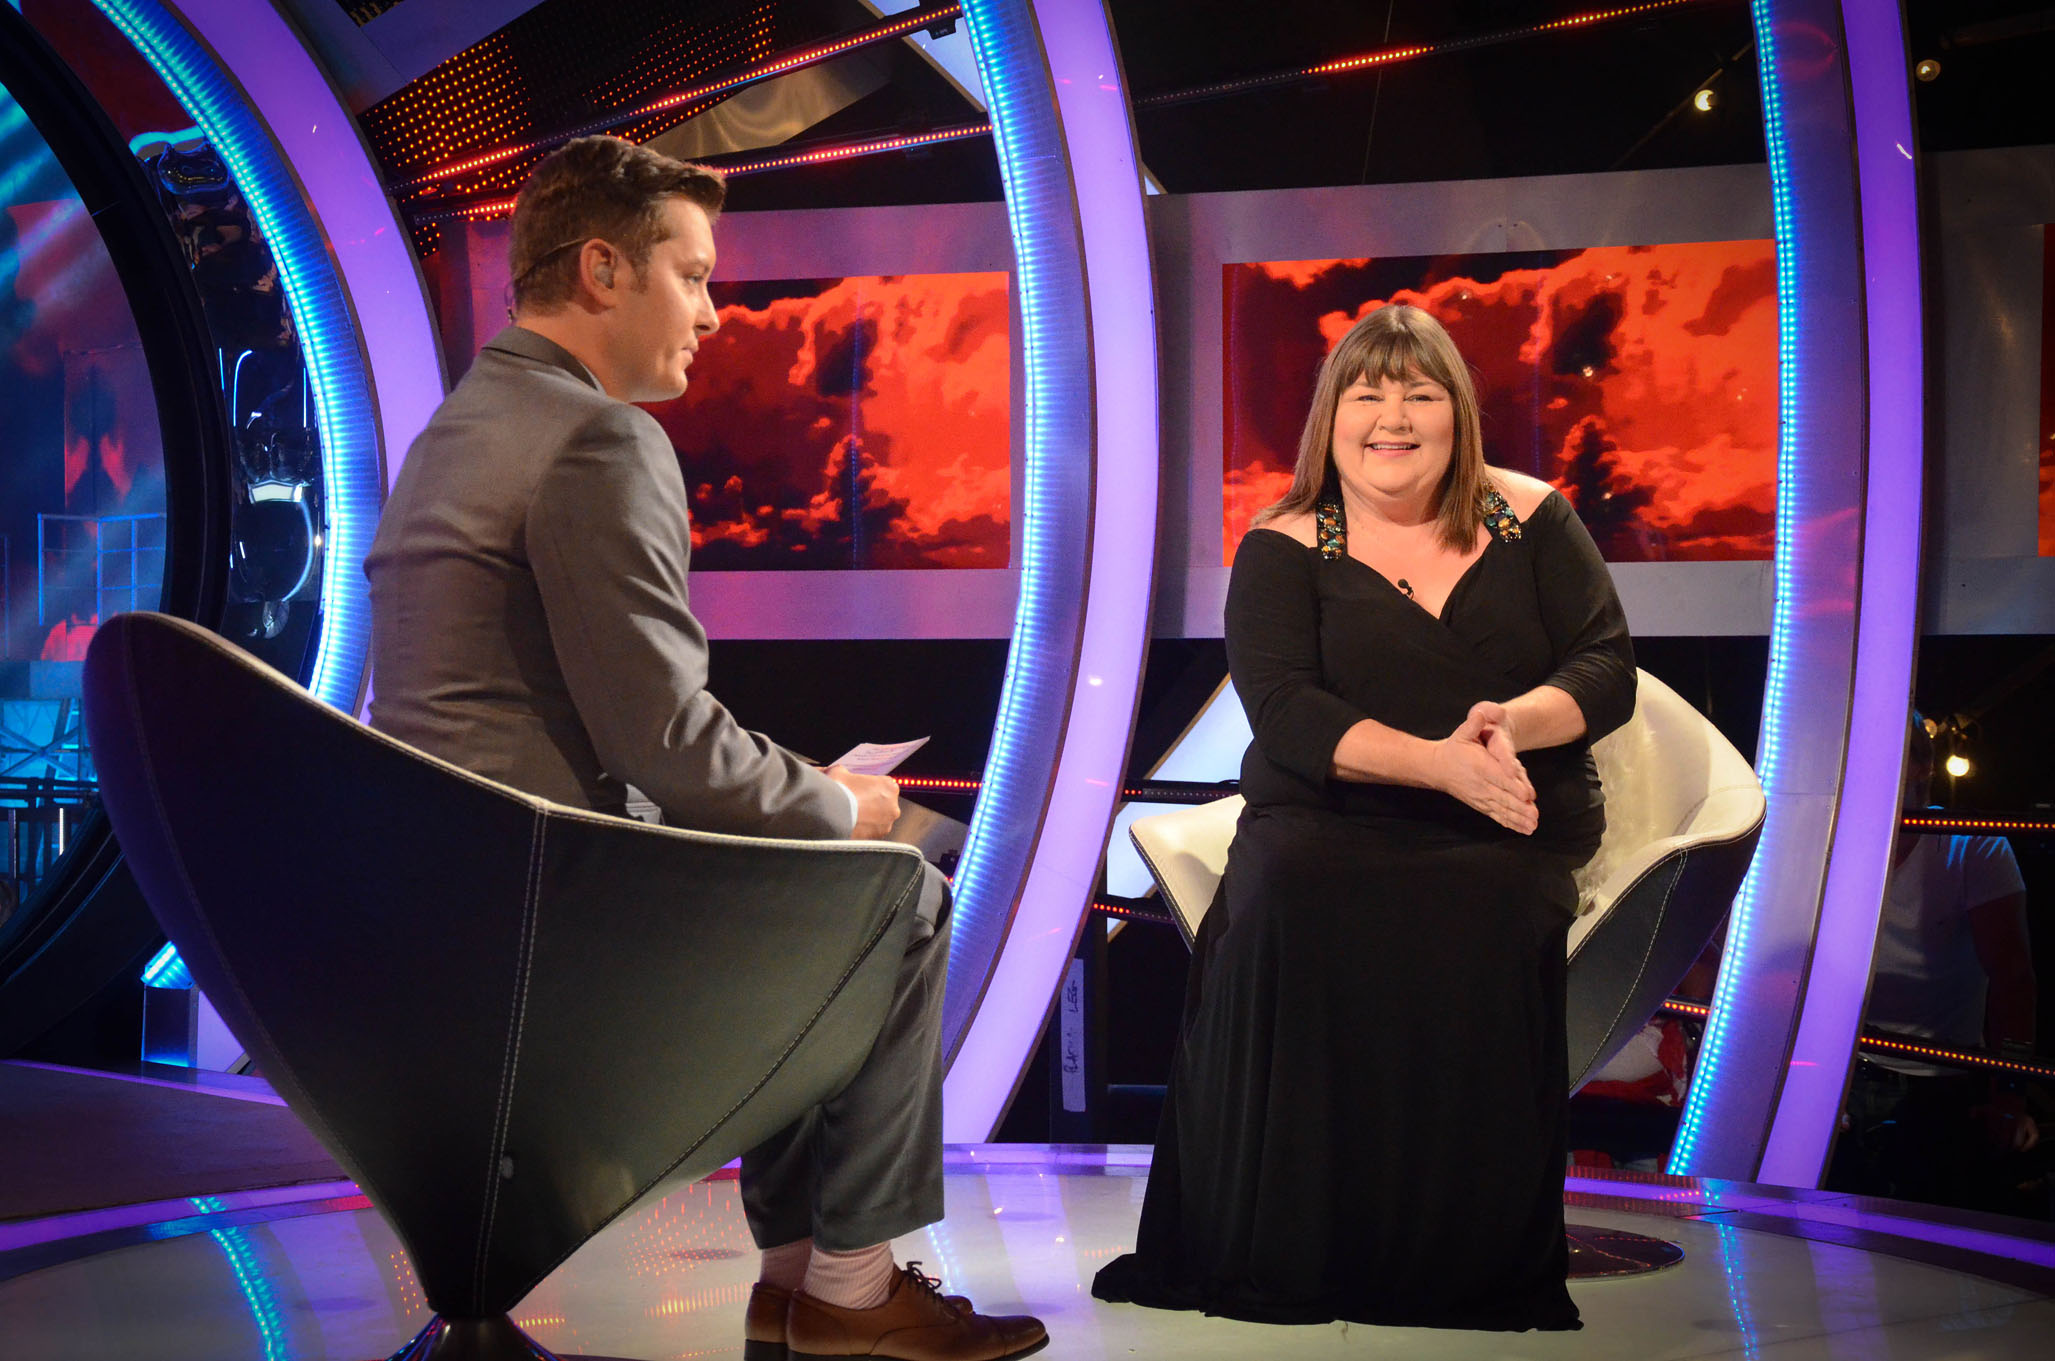 Celebrity Big Brother: Cheryl Fergison is evicted